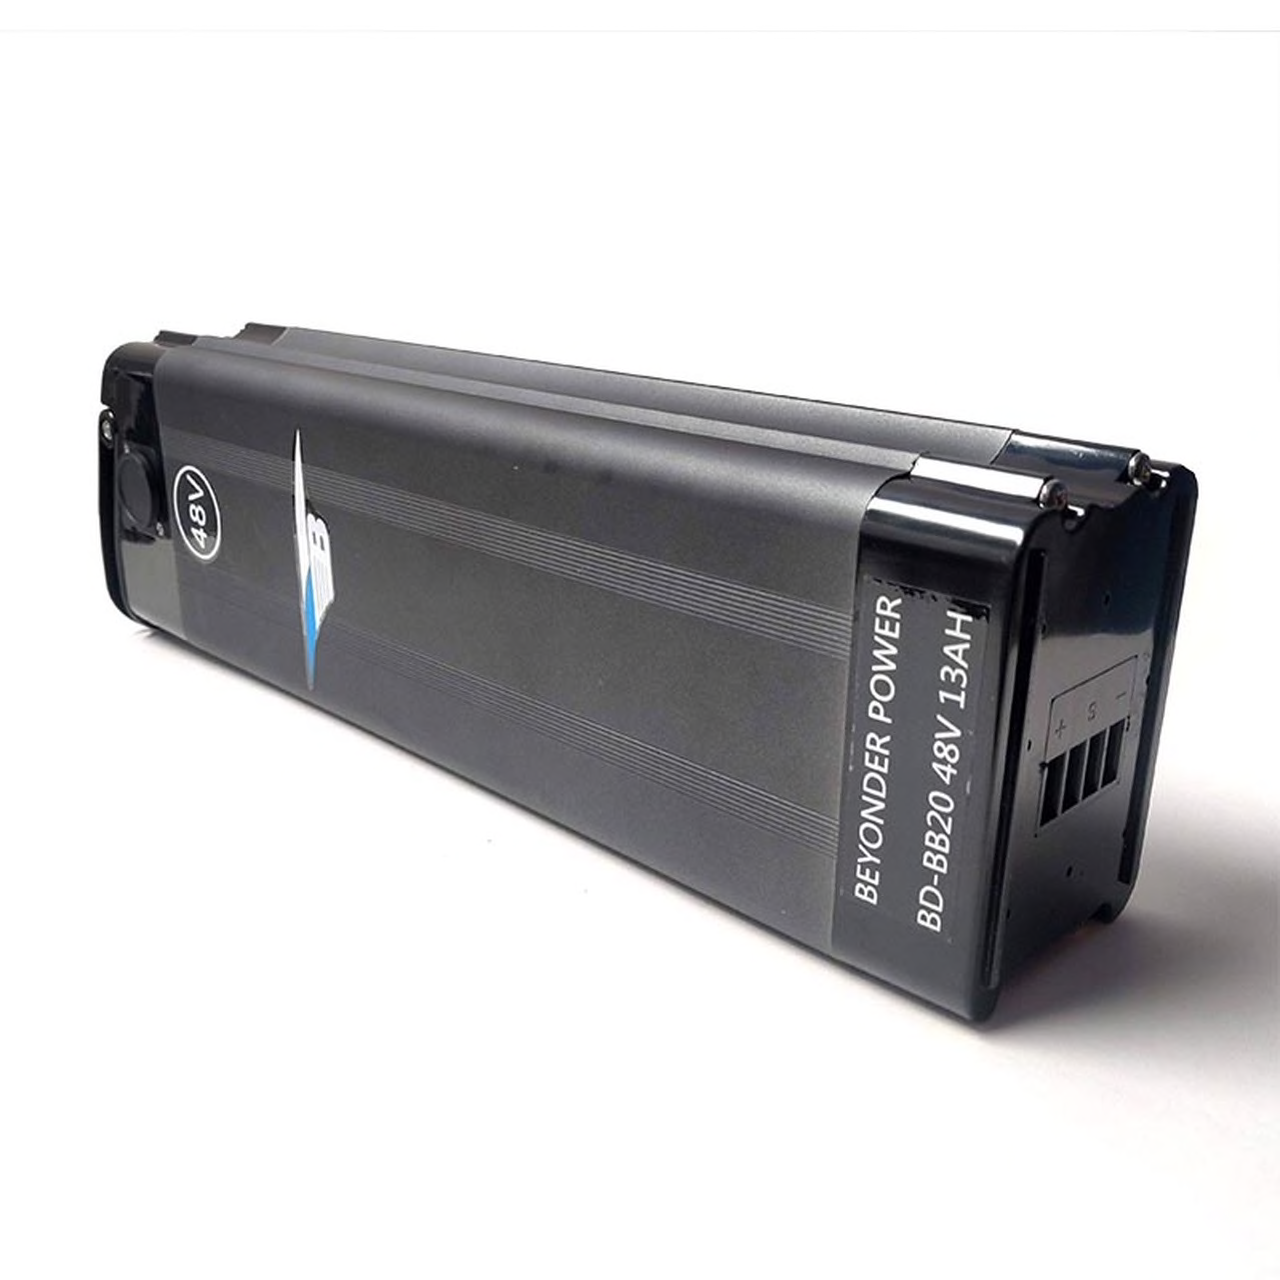 BAGIBIKE 48 volt 13ah Lithium Battery Pack for B10 and B20 (FAT and PREMIUM) Models